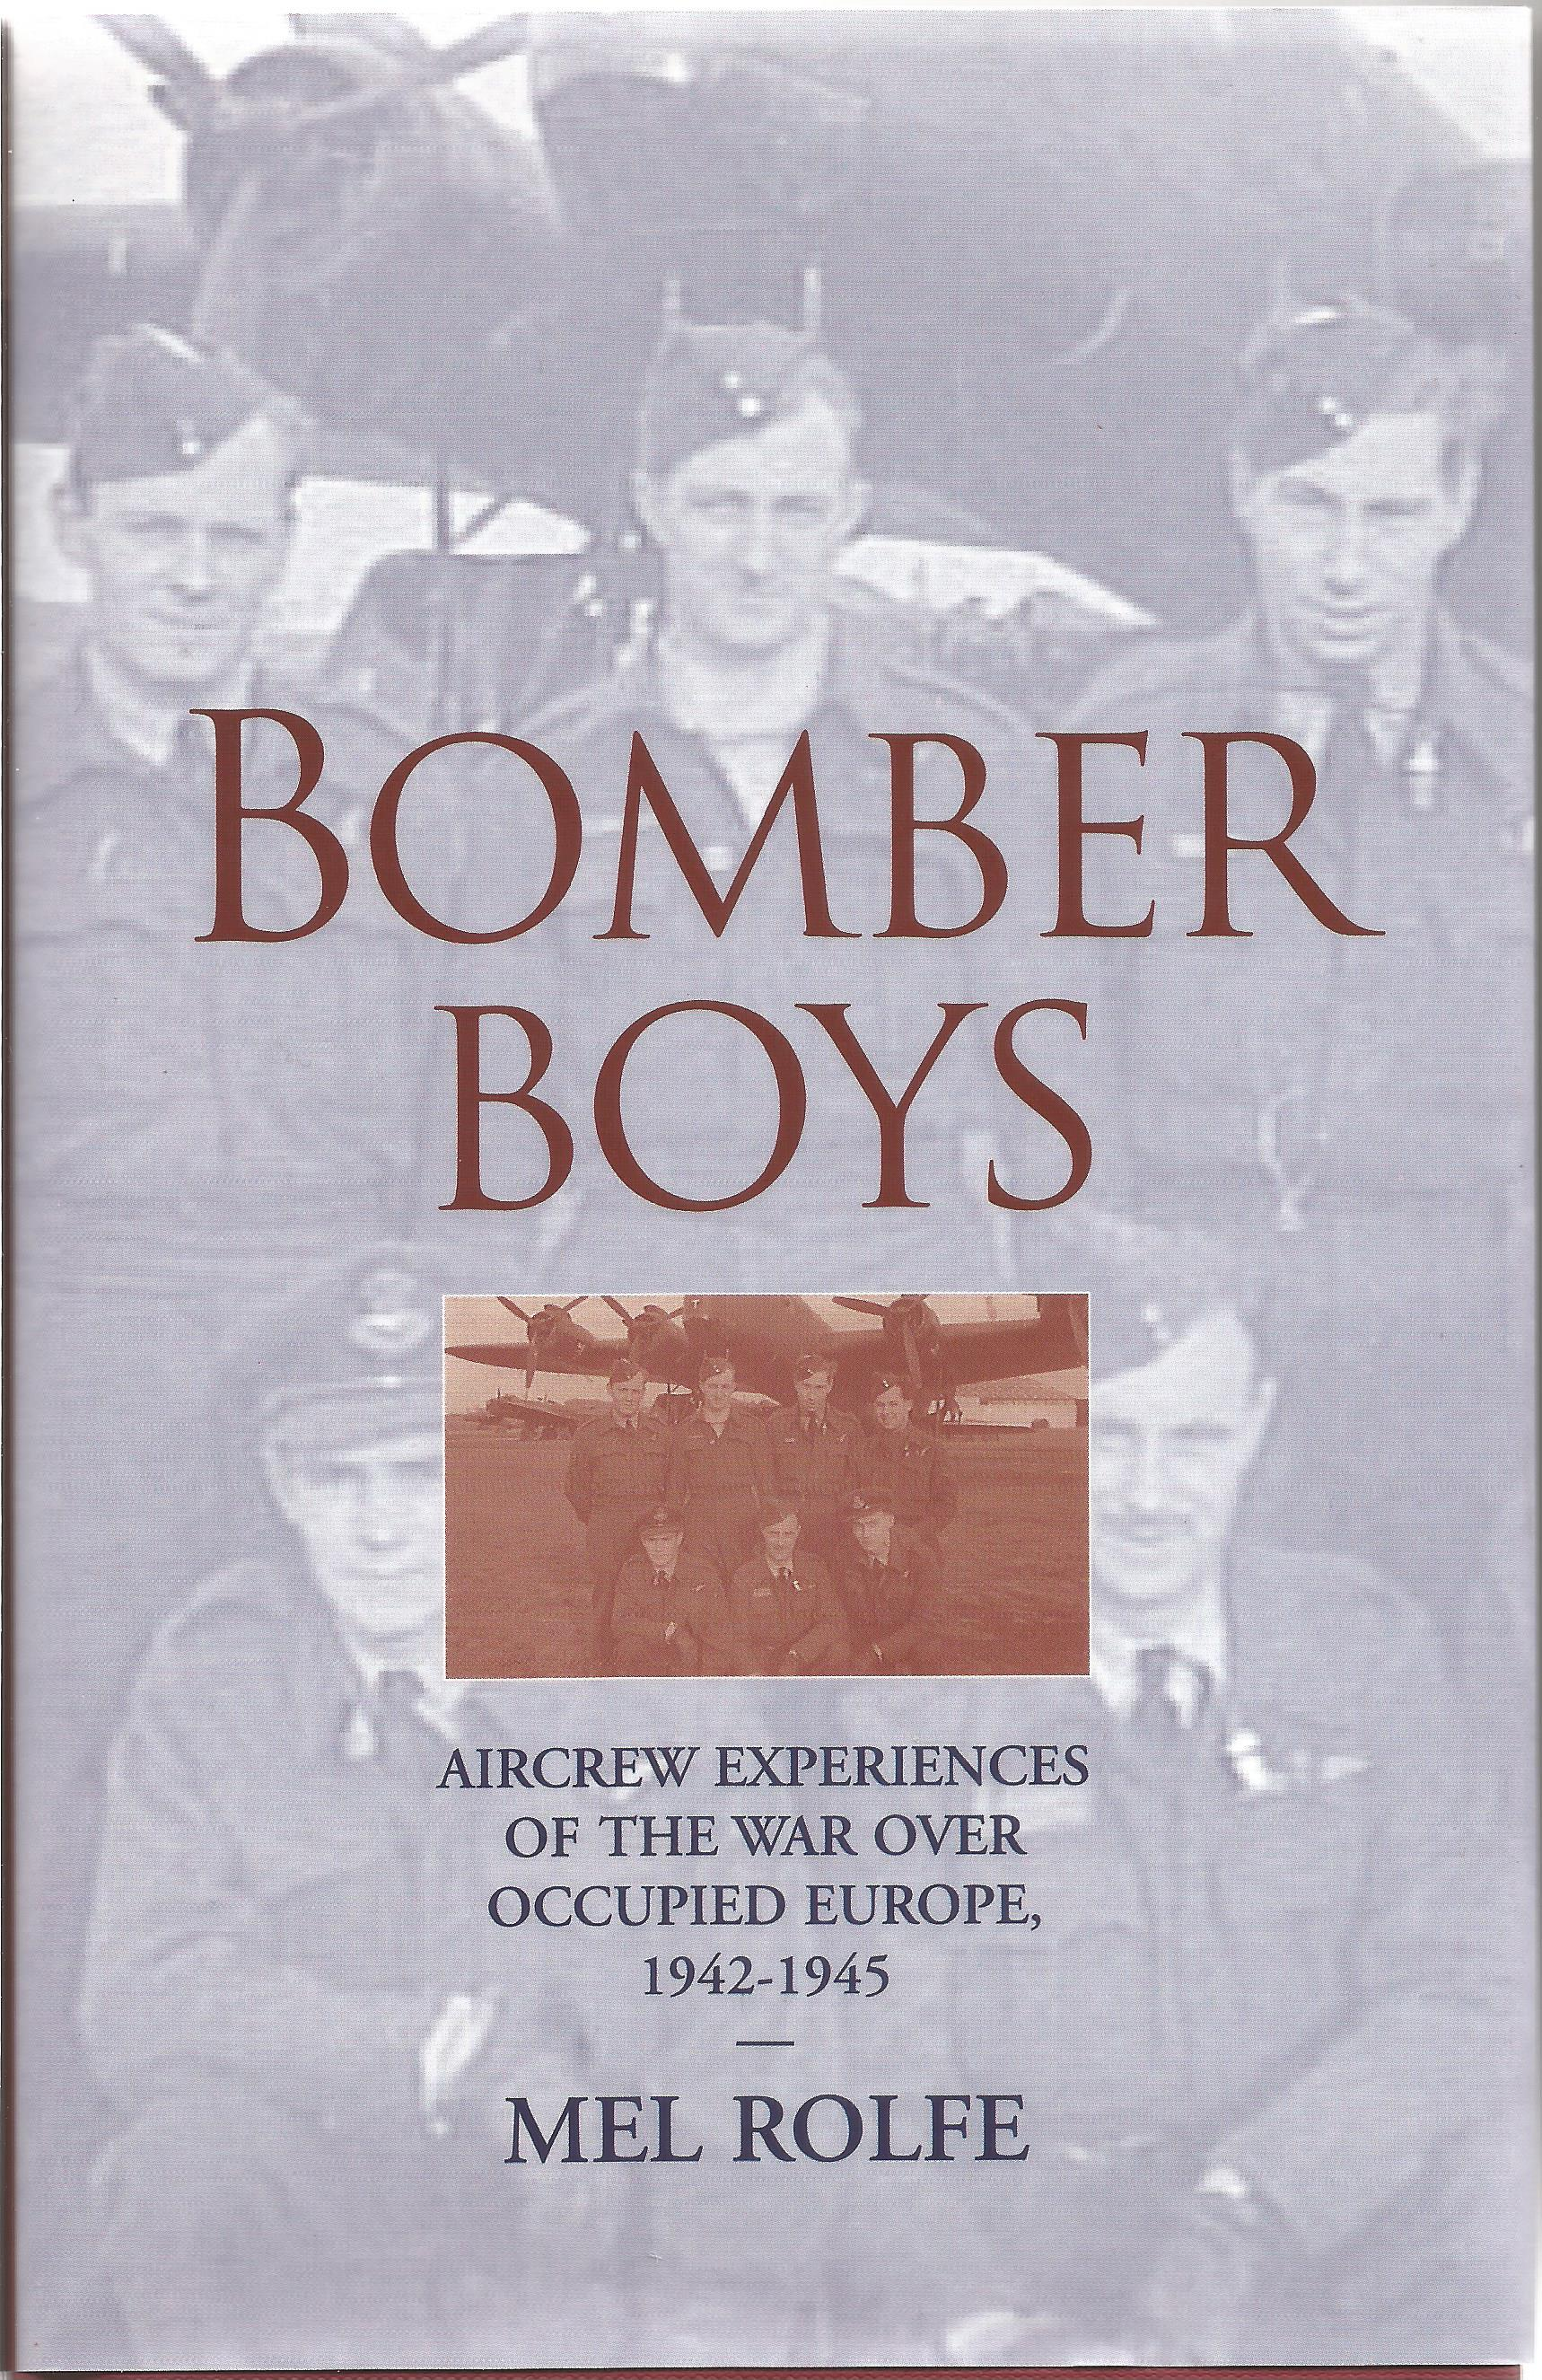 Mel Rolfe. Bomber Boys. Aircrew Experiences of the War Over Occupied Europe 1942 1945. a WW2